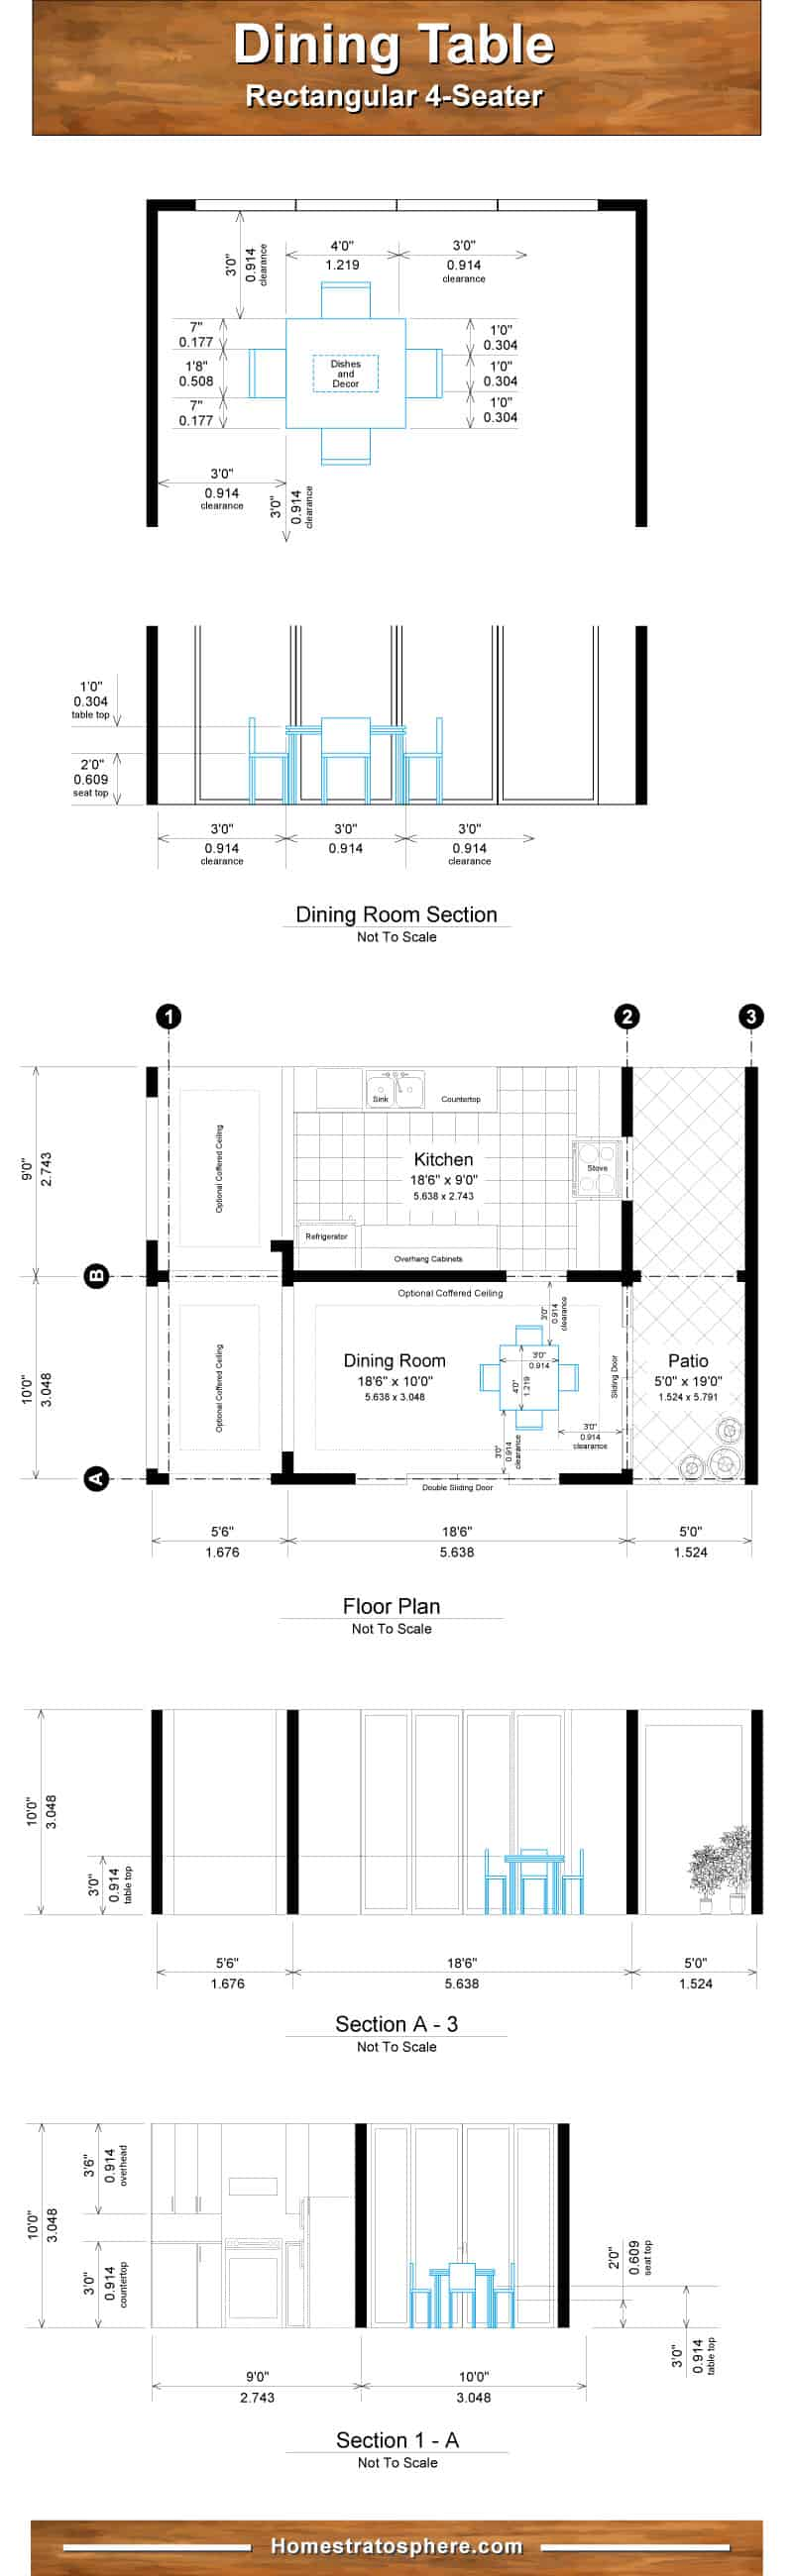 Chart diagram setting out the dining room and table dimensions for 4 people.